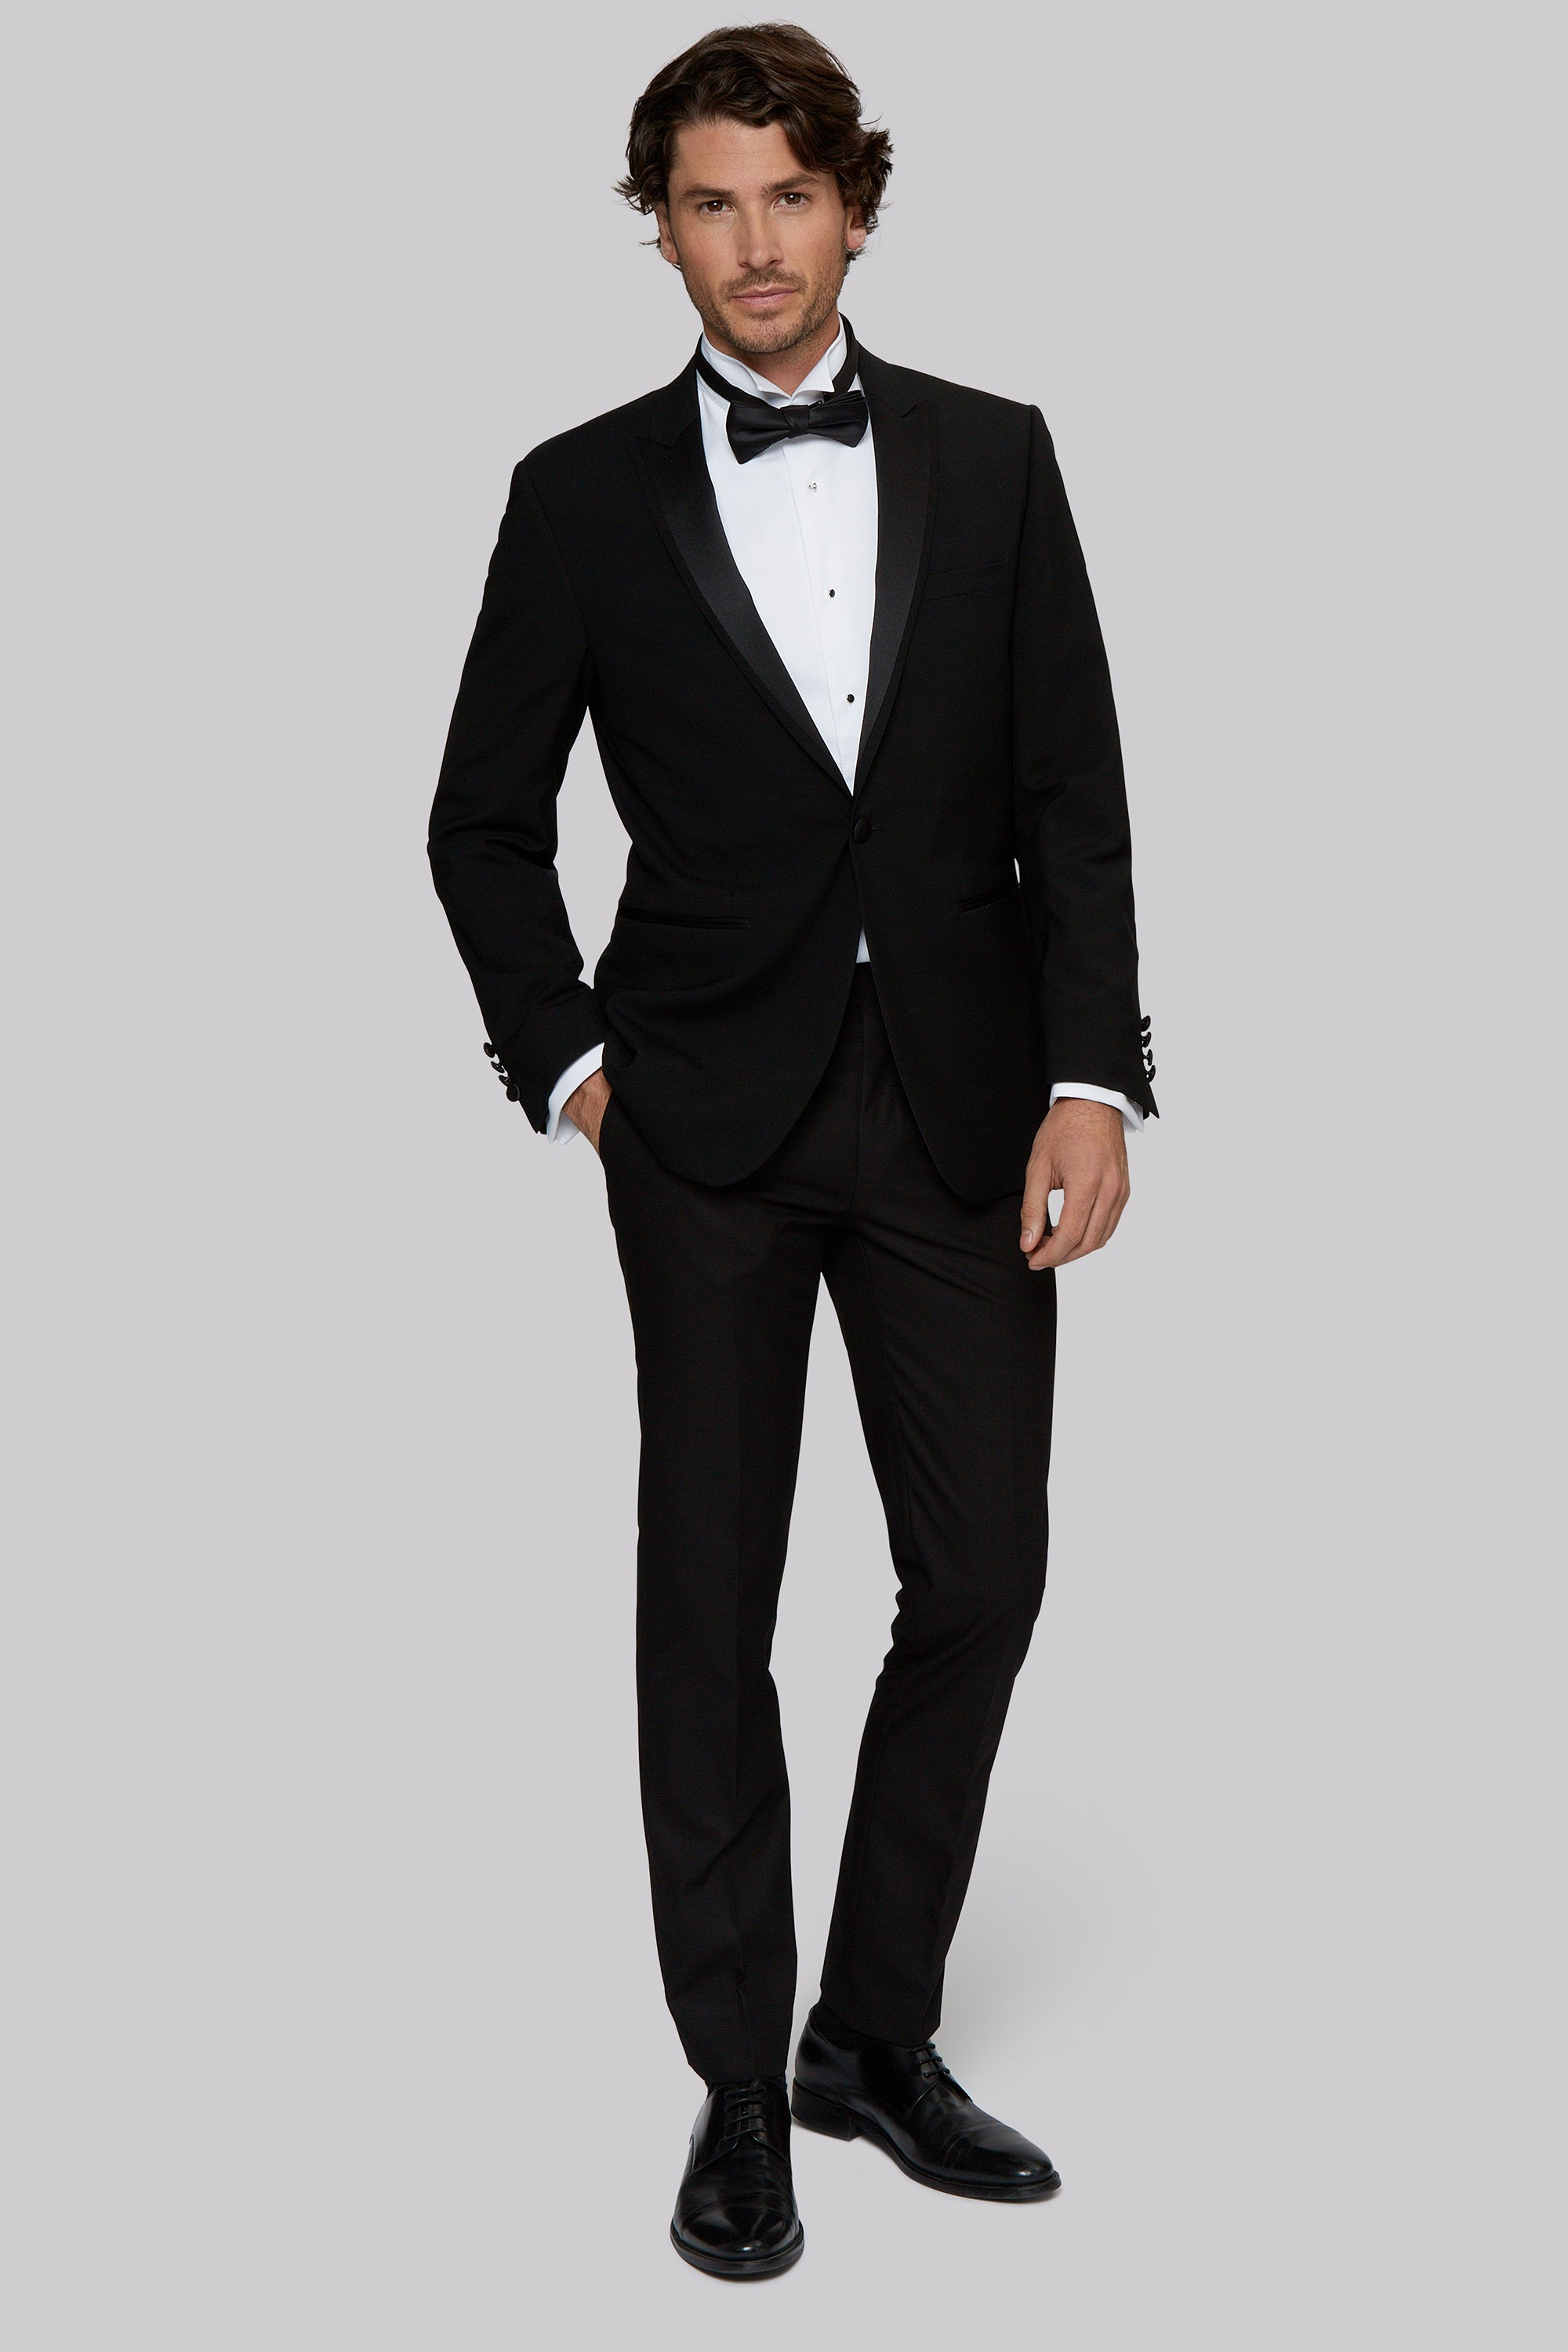 The black tux coupon code